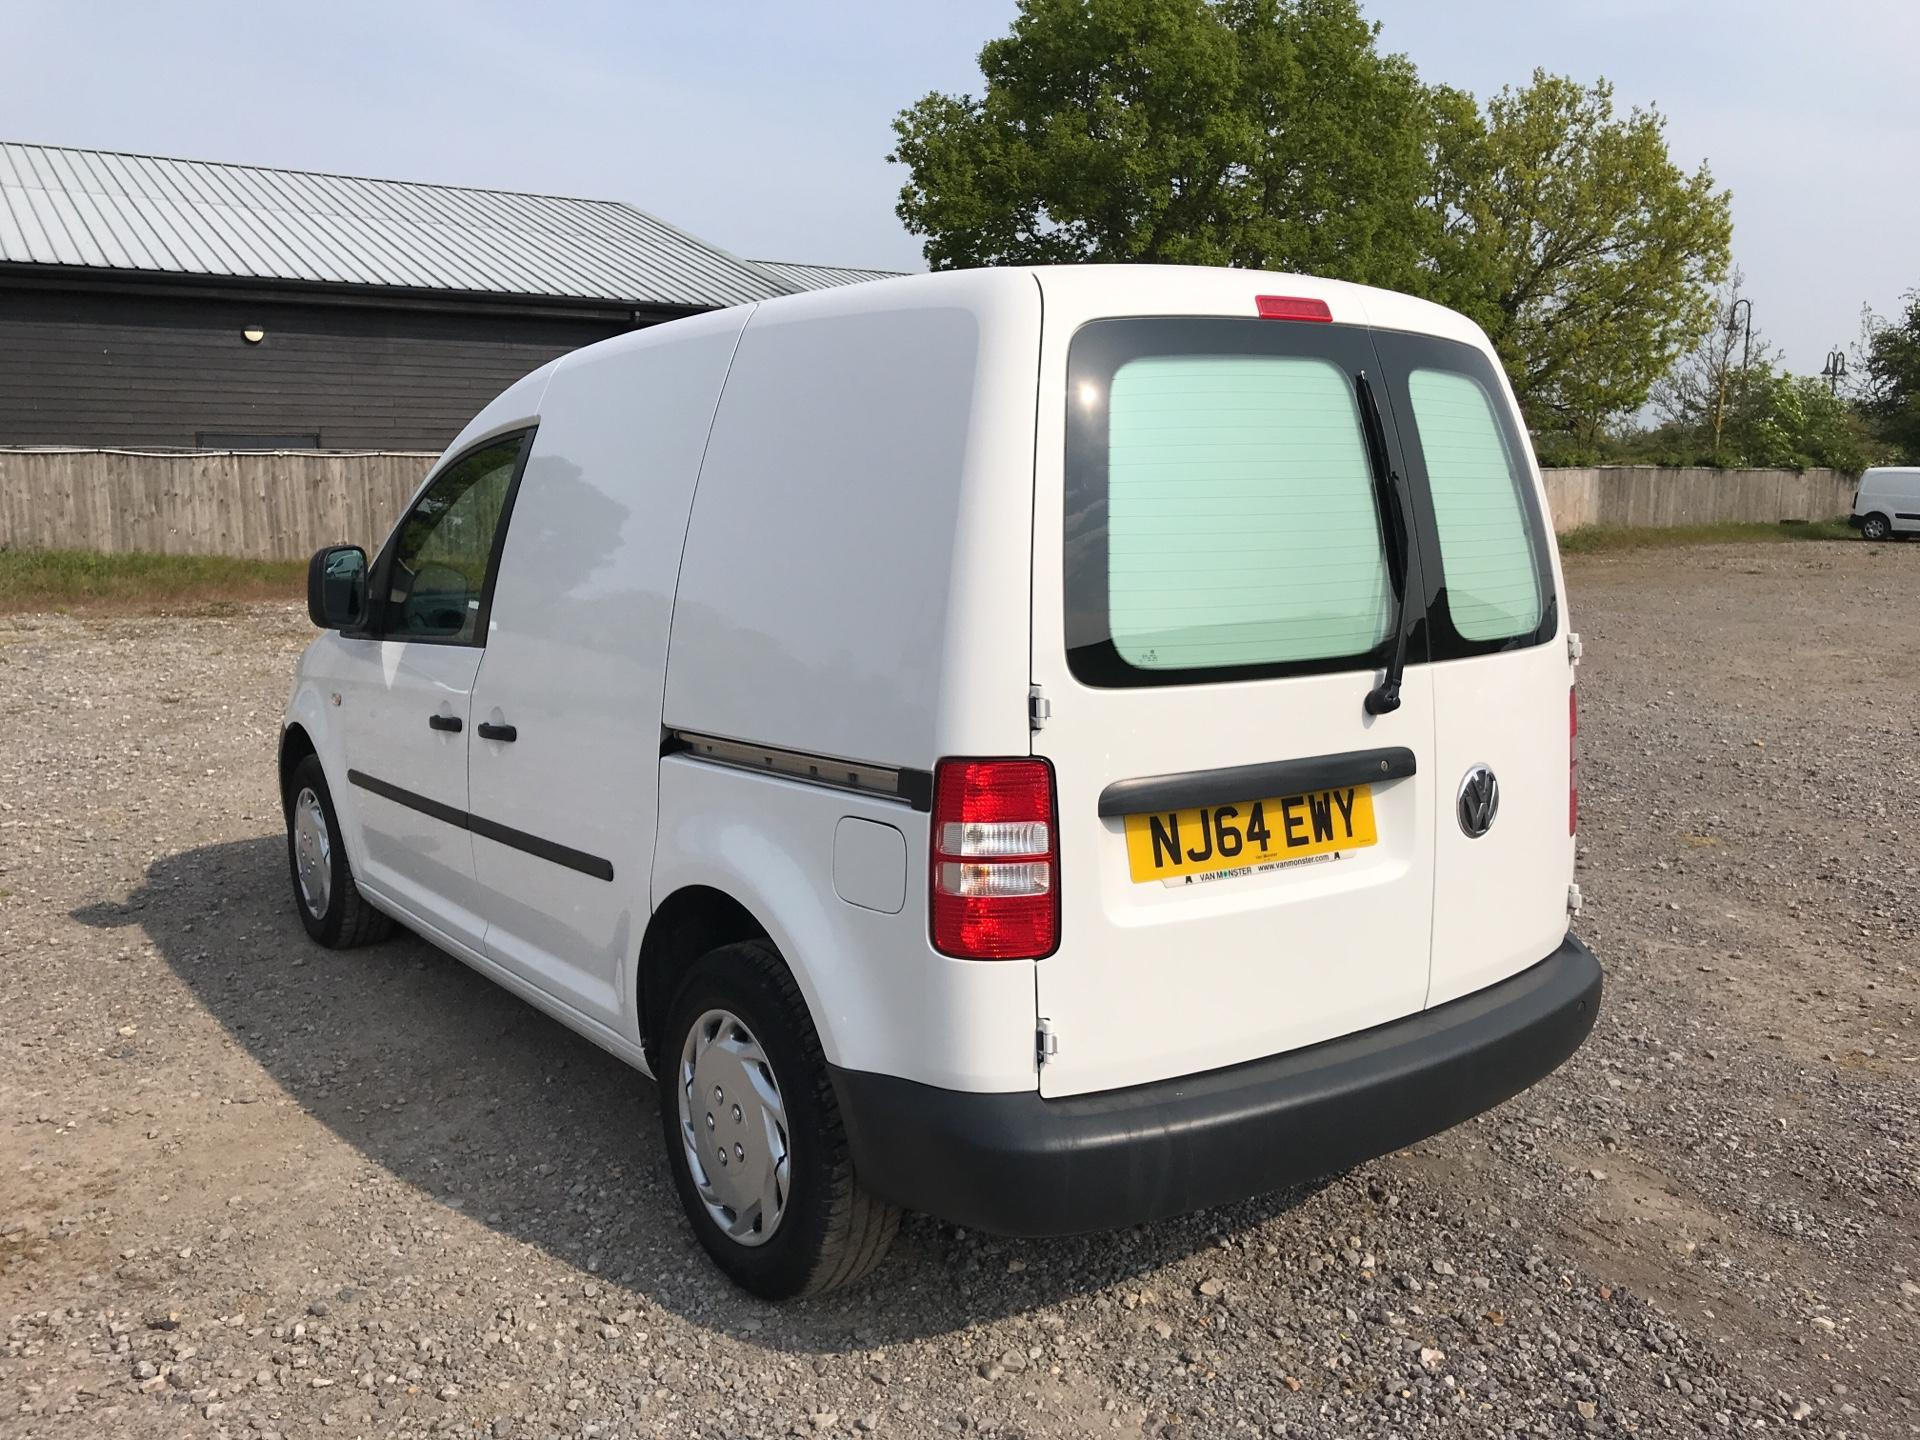 2014 Volkswagen Caddy 1.6 75PS STARTLINE EURO 5 (NJ64EWY) Image 5